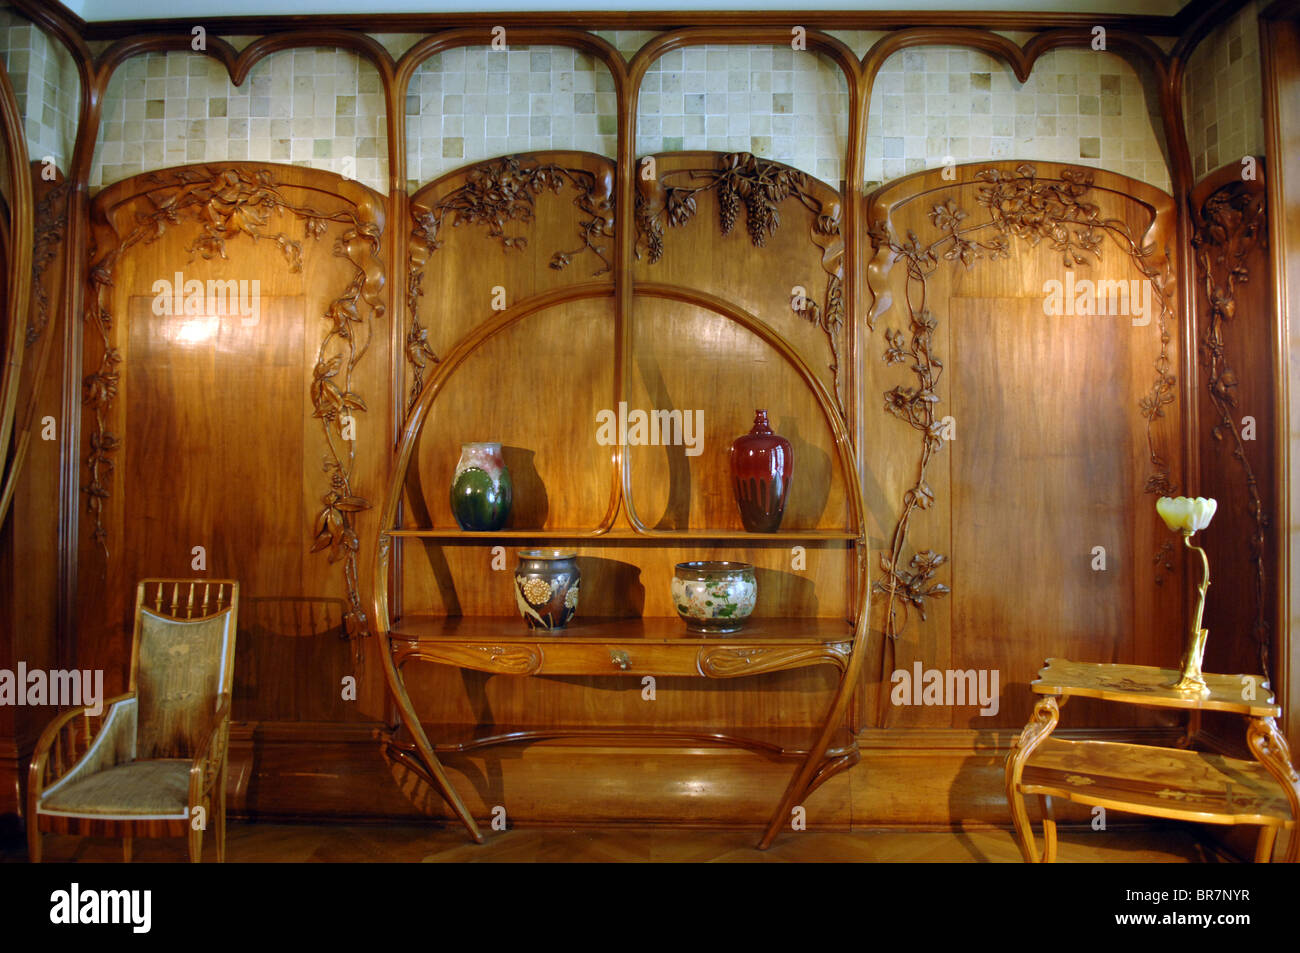 Art Deco Möbel Shop Art Deco Furniture Stock Photos Art Deco Furniture Stock